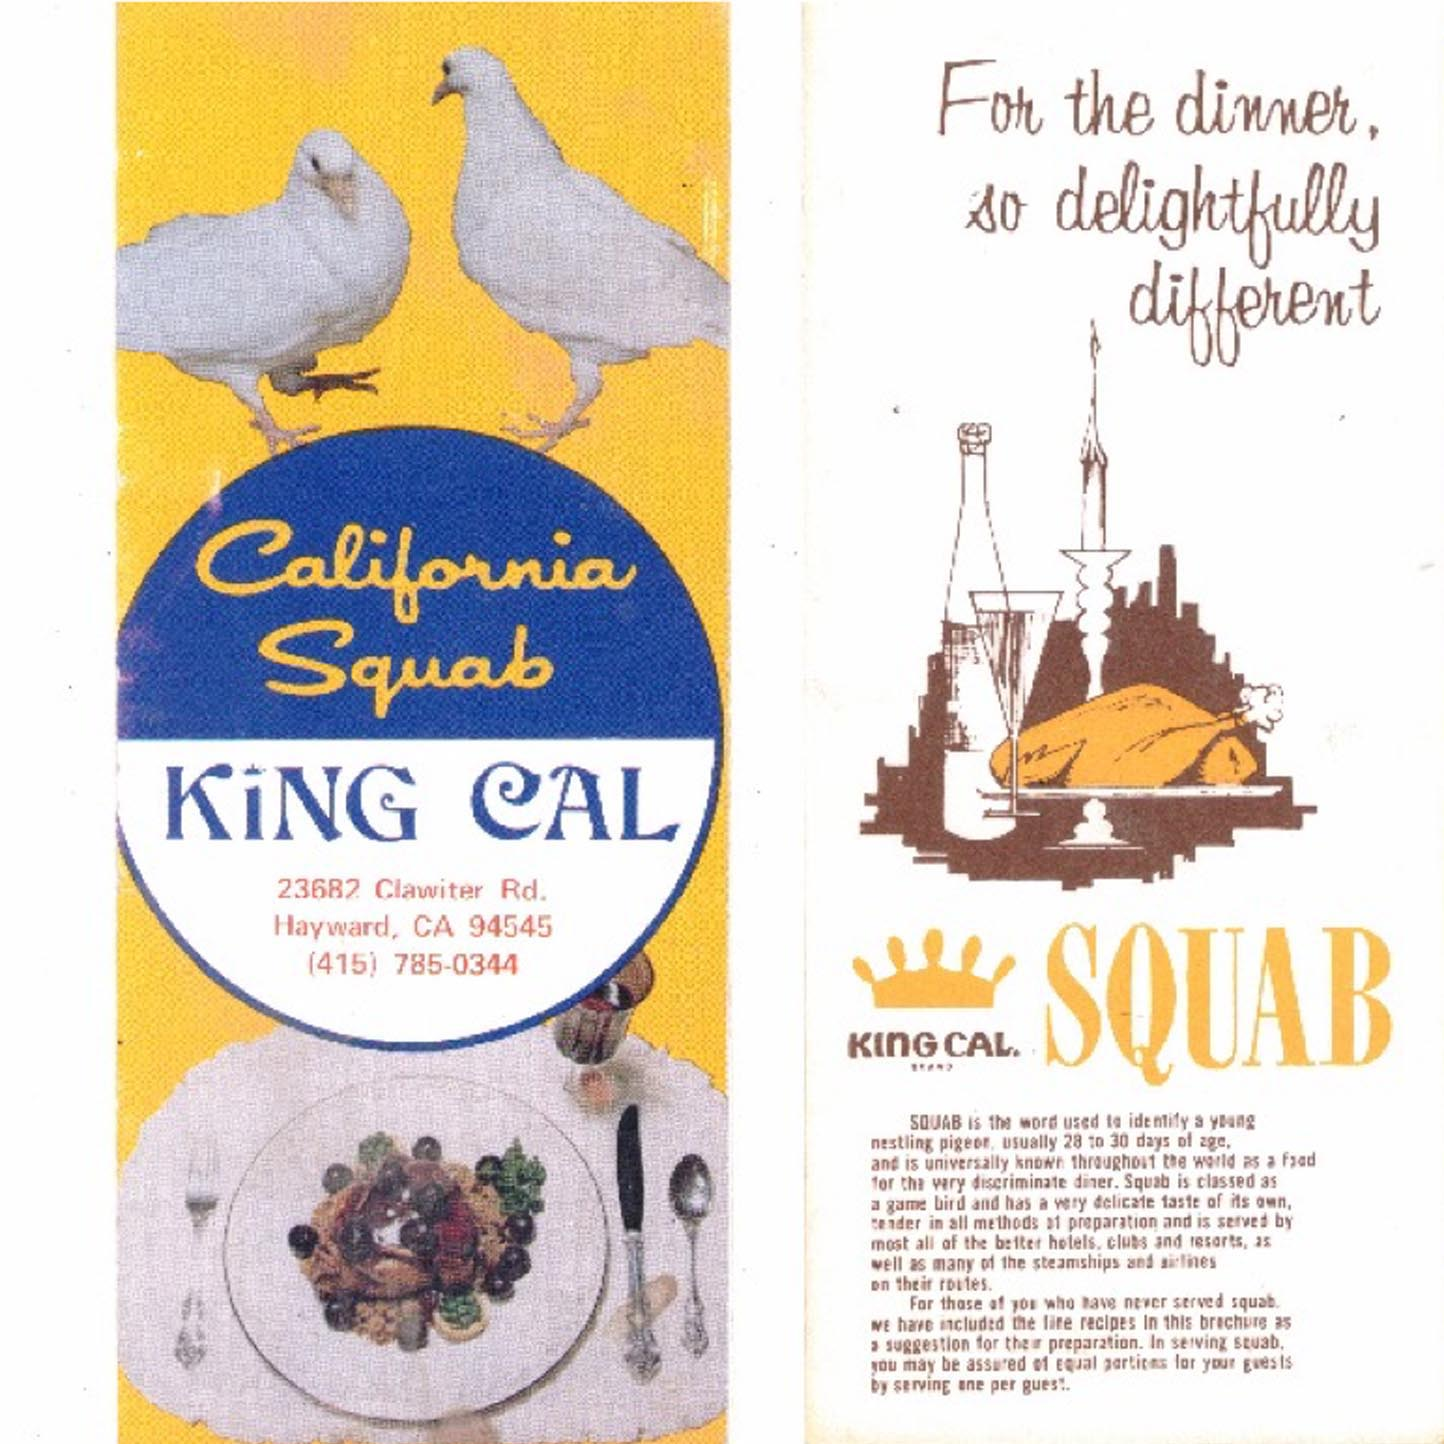 1972. King Cal Squab advertising.